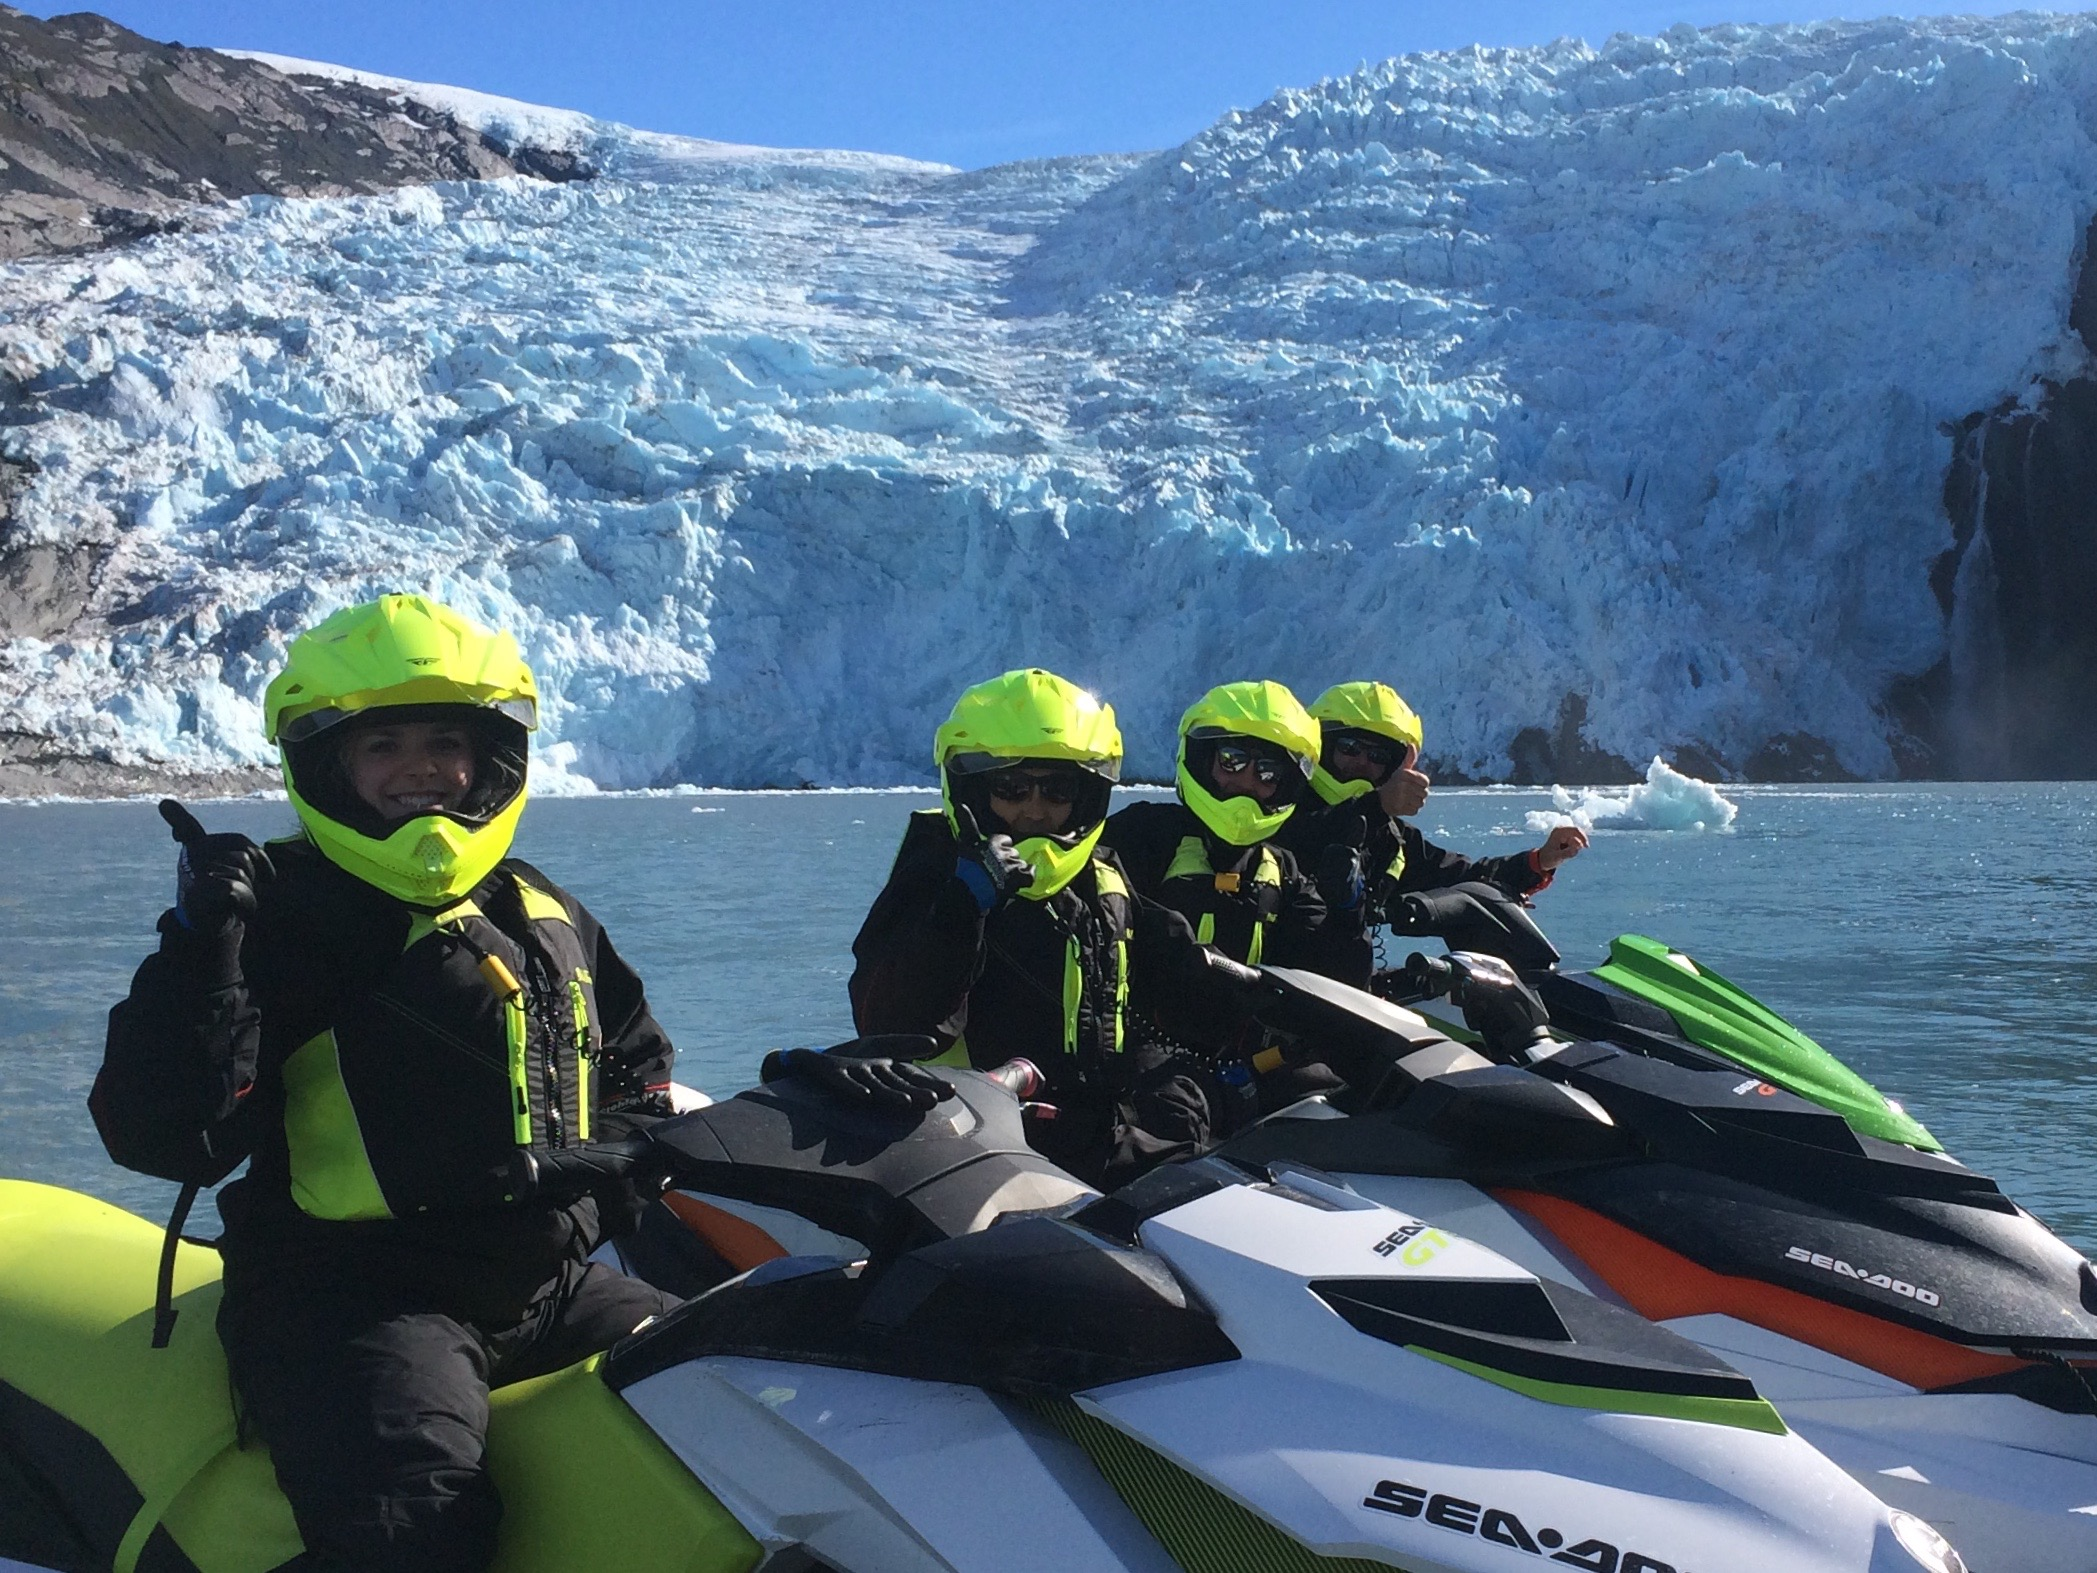 Alaska Adventure Tours like no other with Glacier Jet Ski Adventures